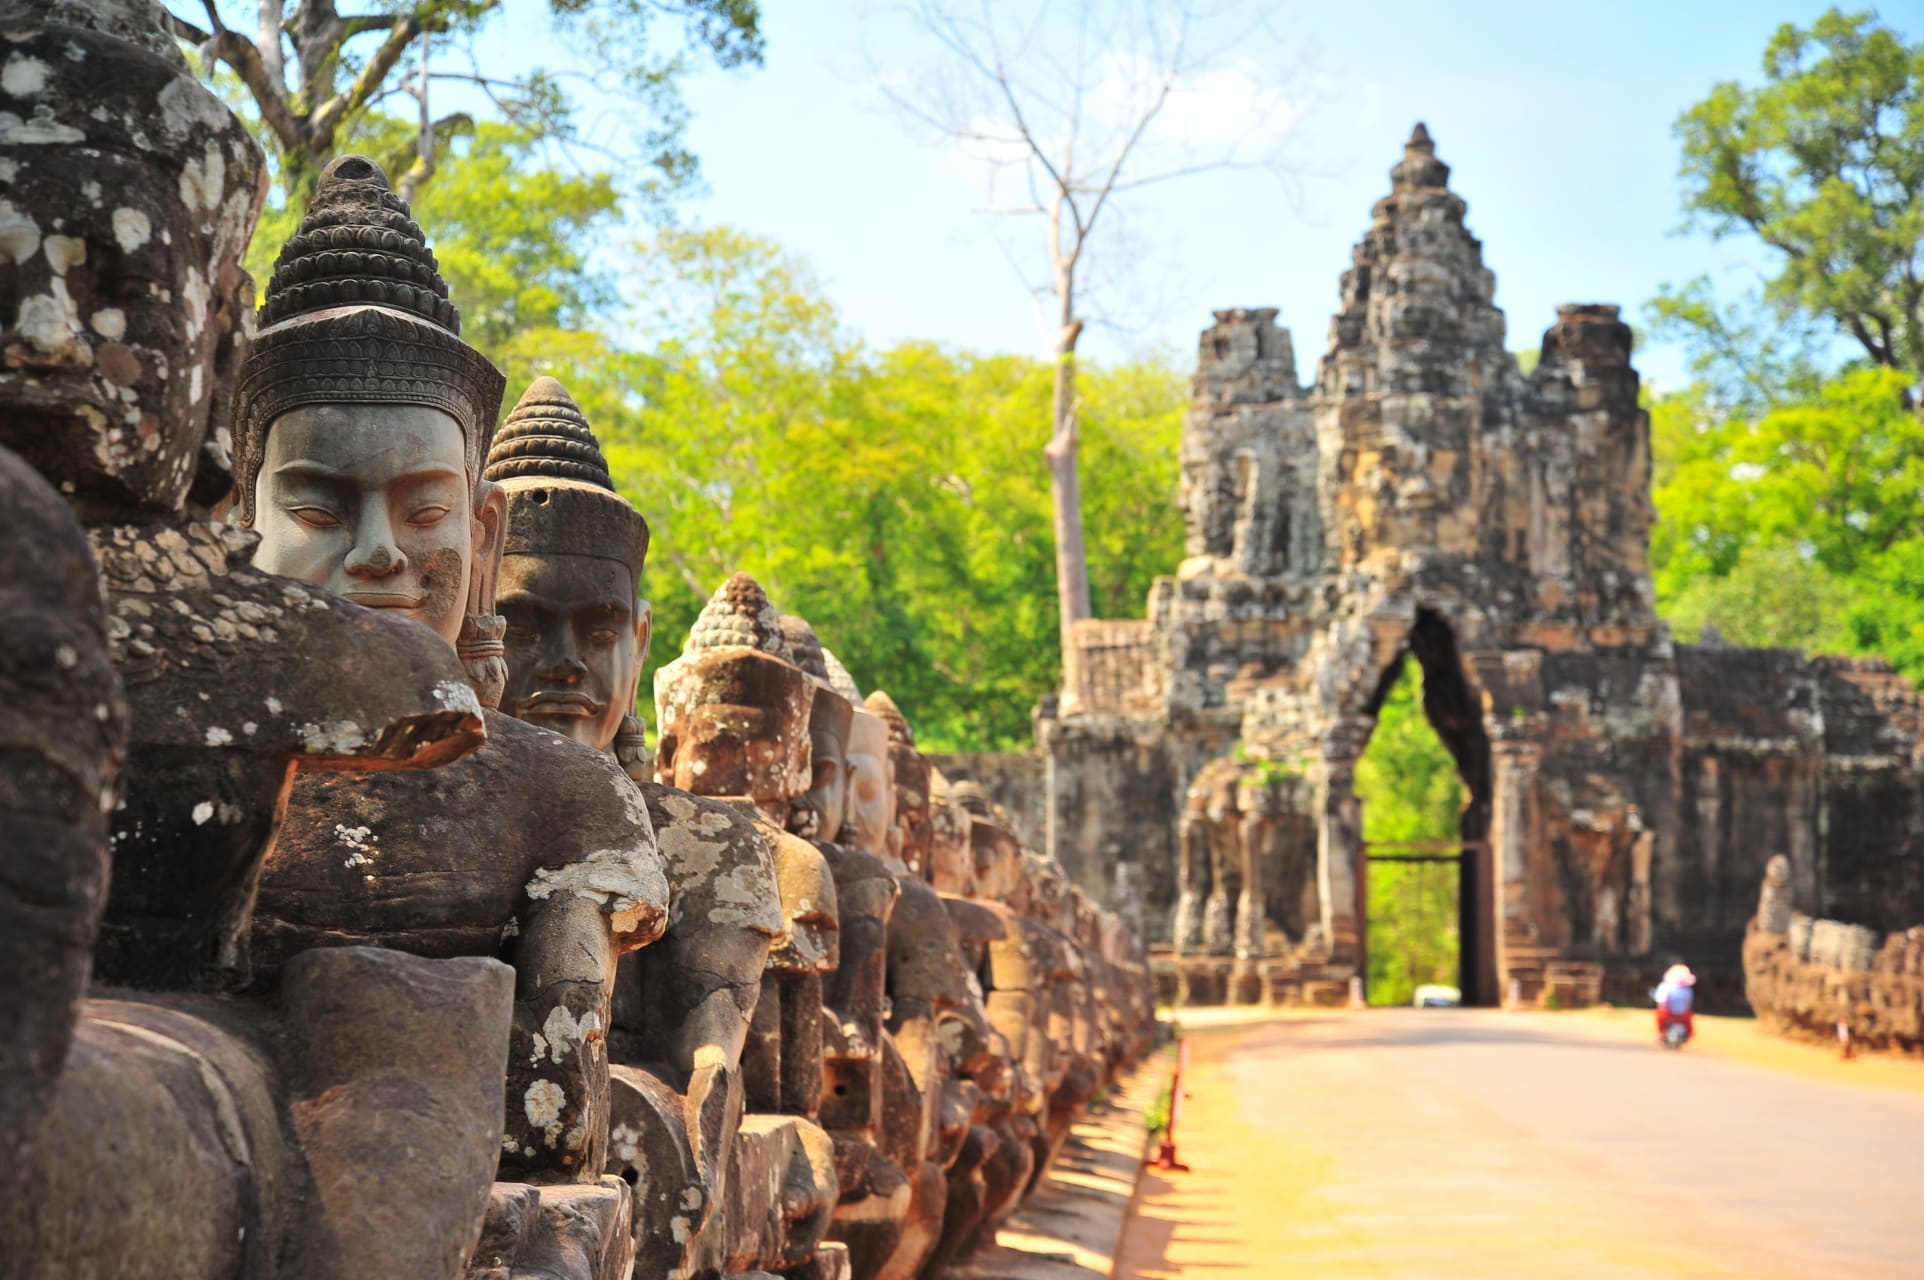 Siem Reap - Discover the Bayon Temple and Angkor Thom City